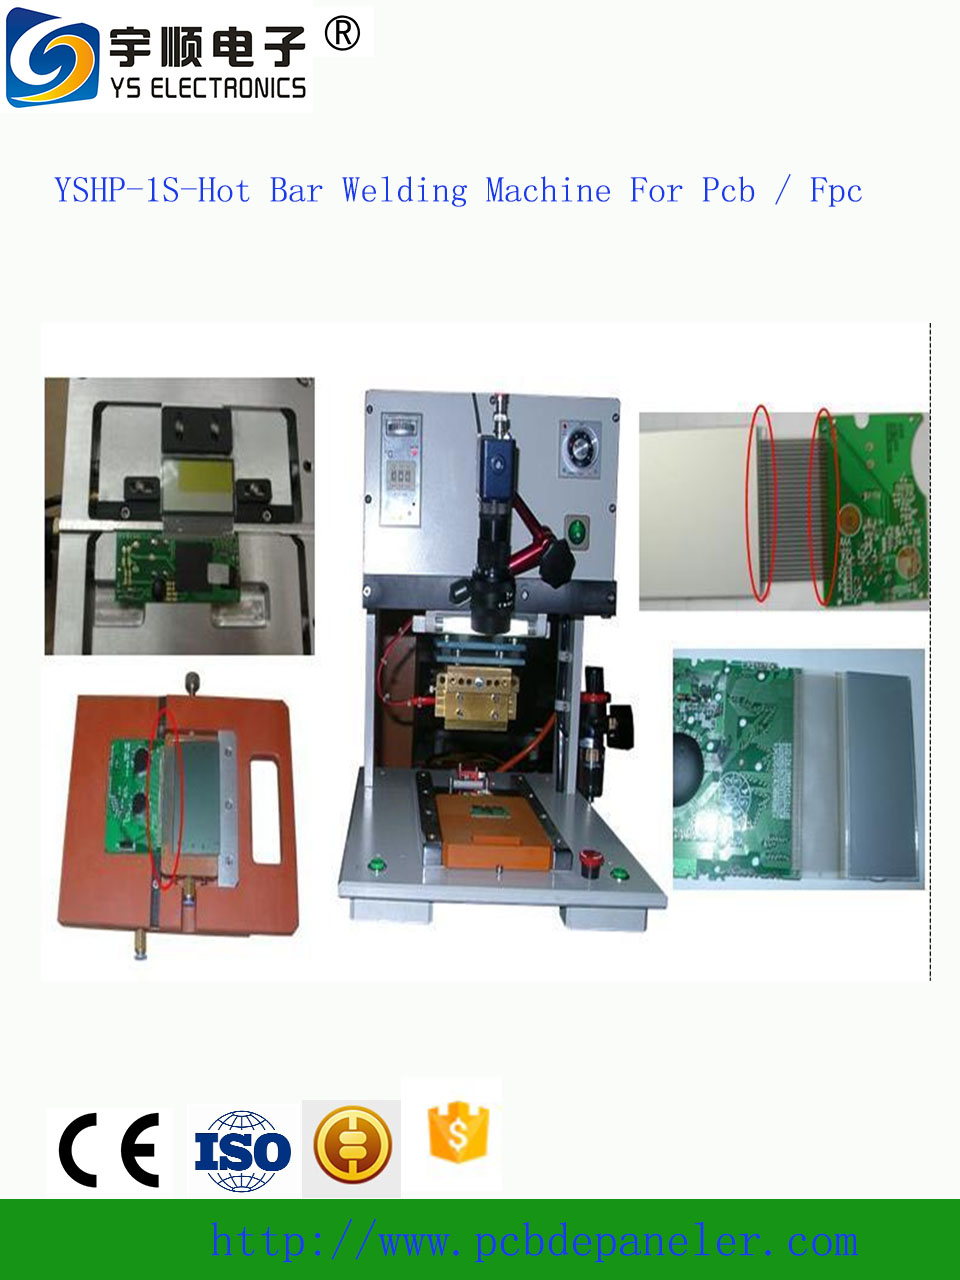 Automatic Pcb Soldering Machine Hot Bar Welding Machine For Pcb / Fpc